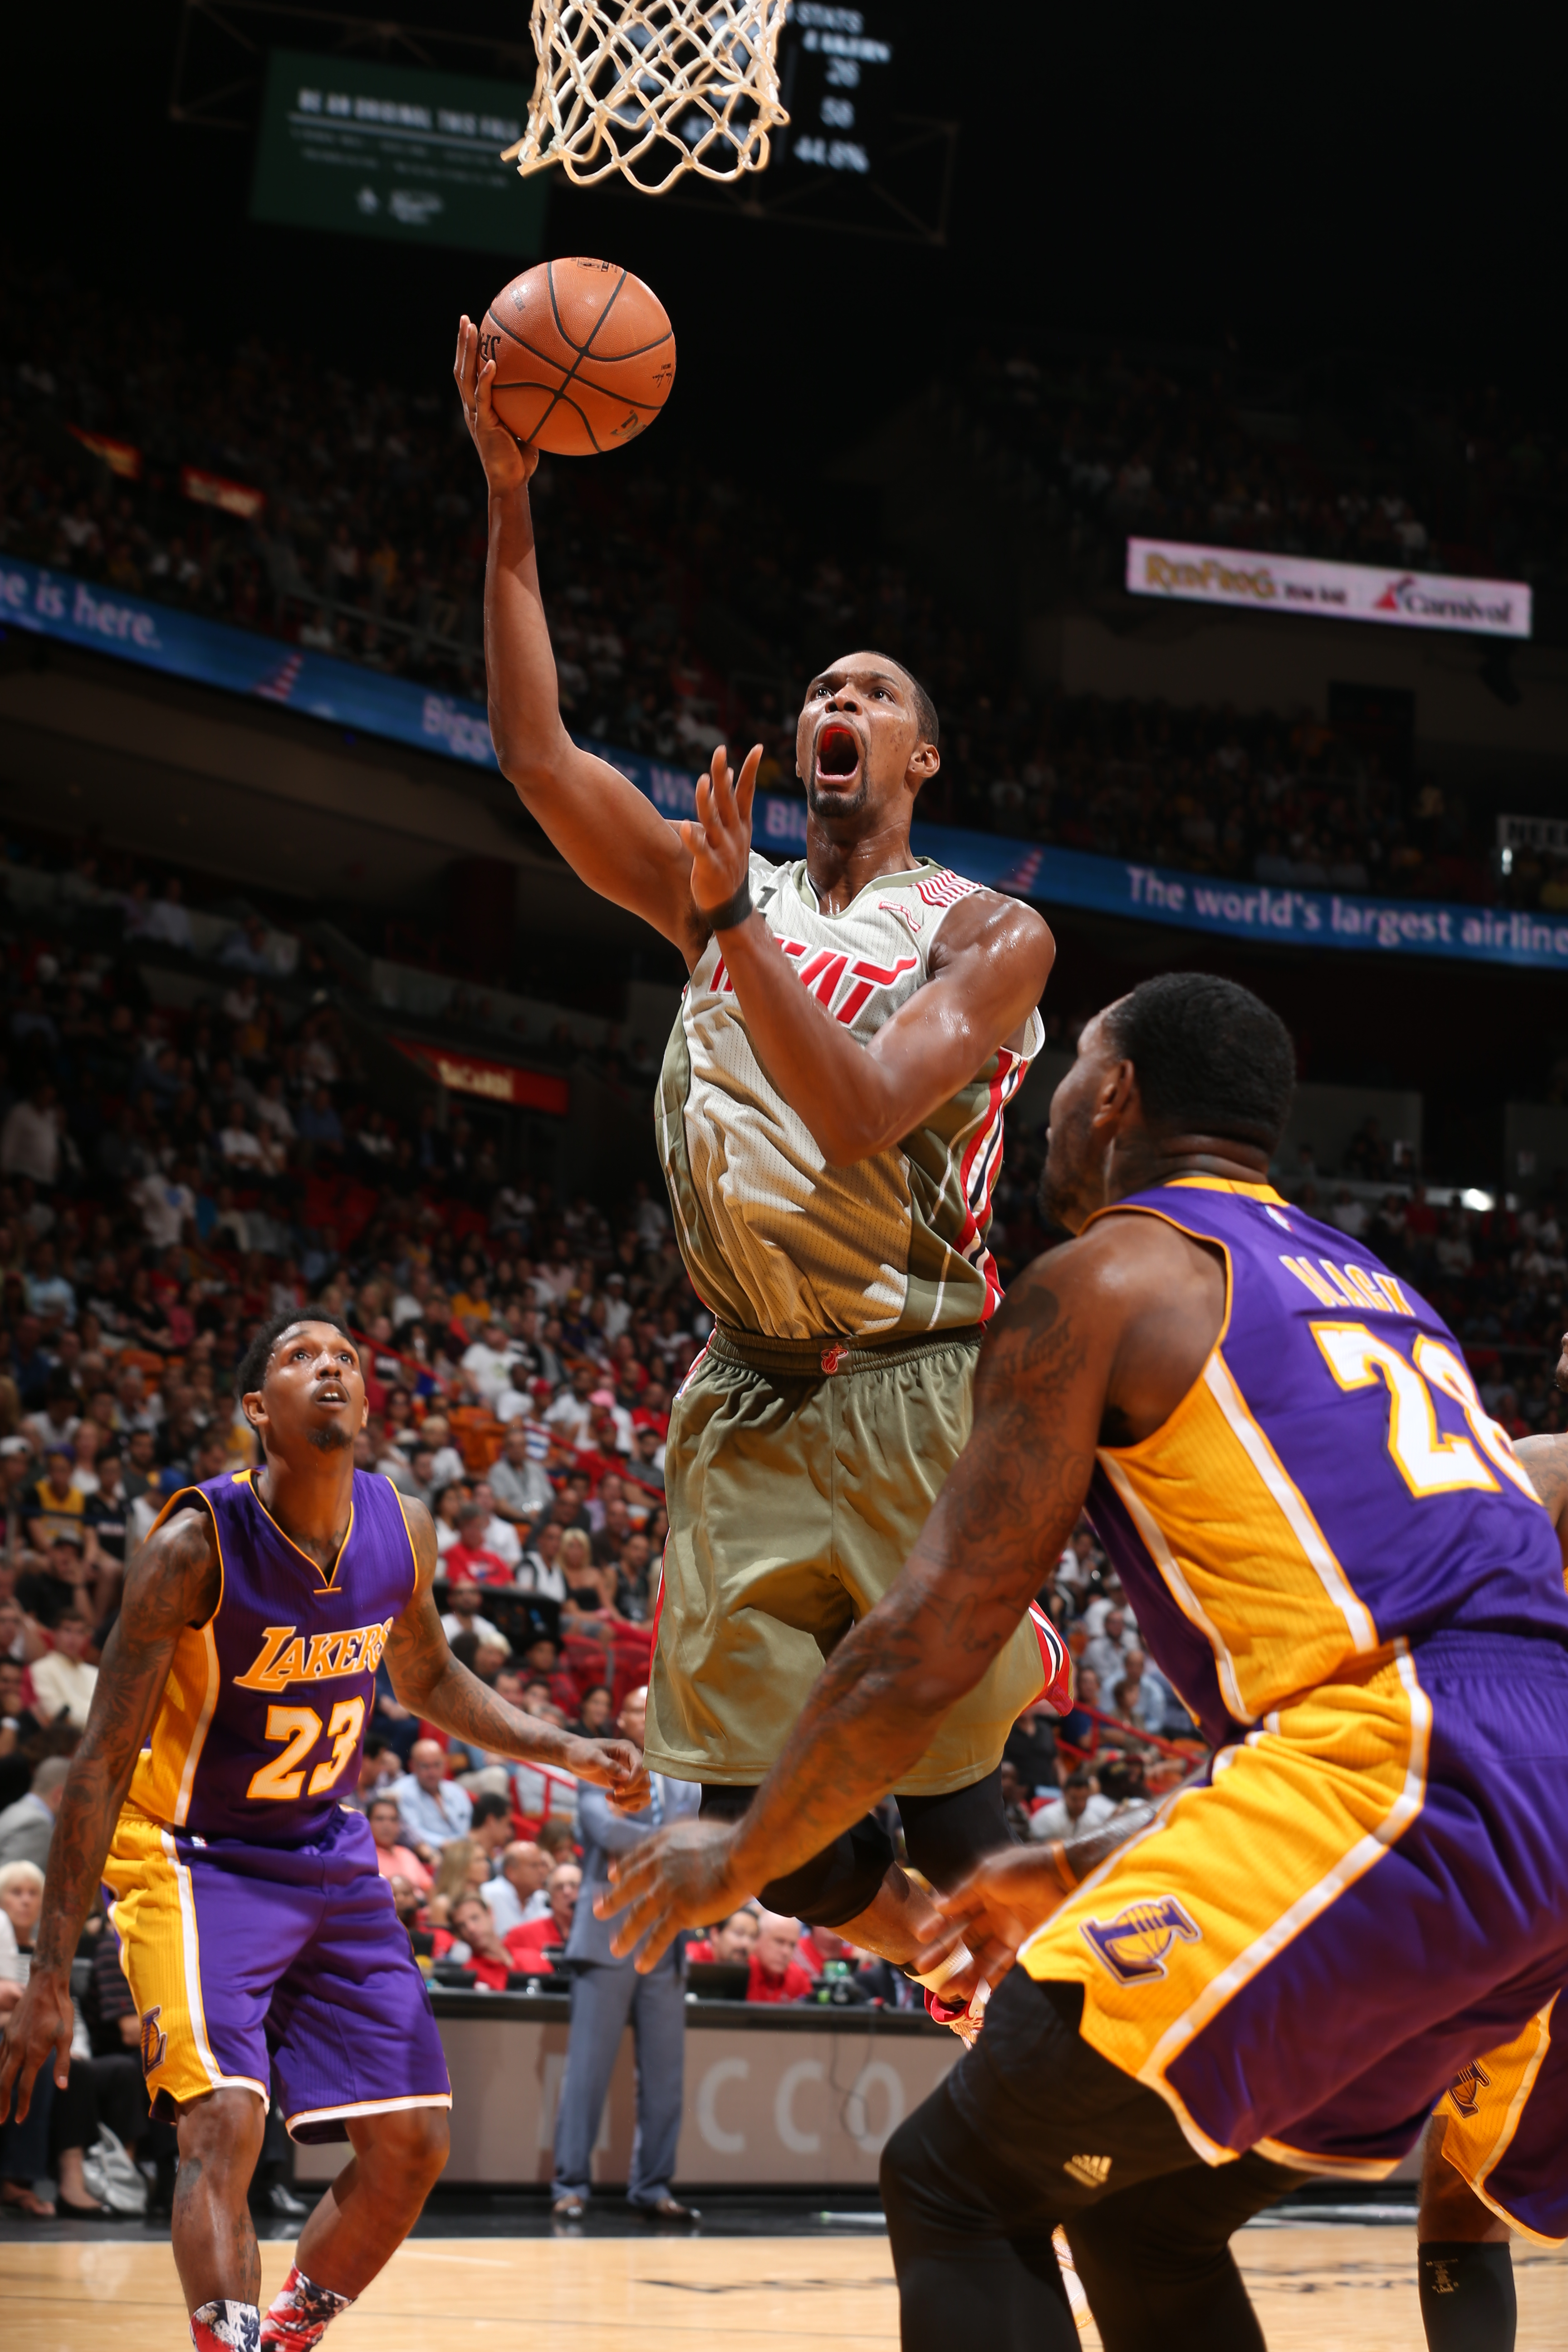 MIAMI, FL - NOVEMBER 10:  Chris Bosh #1 of the Miami Heat goes to the basket against the Los Angeles Lakers on November 10, 2015 at AmericanAirlines Arena in Miami, Florida. (Photo by Joe Murphy/NBAE via Getty Images)